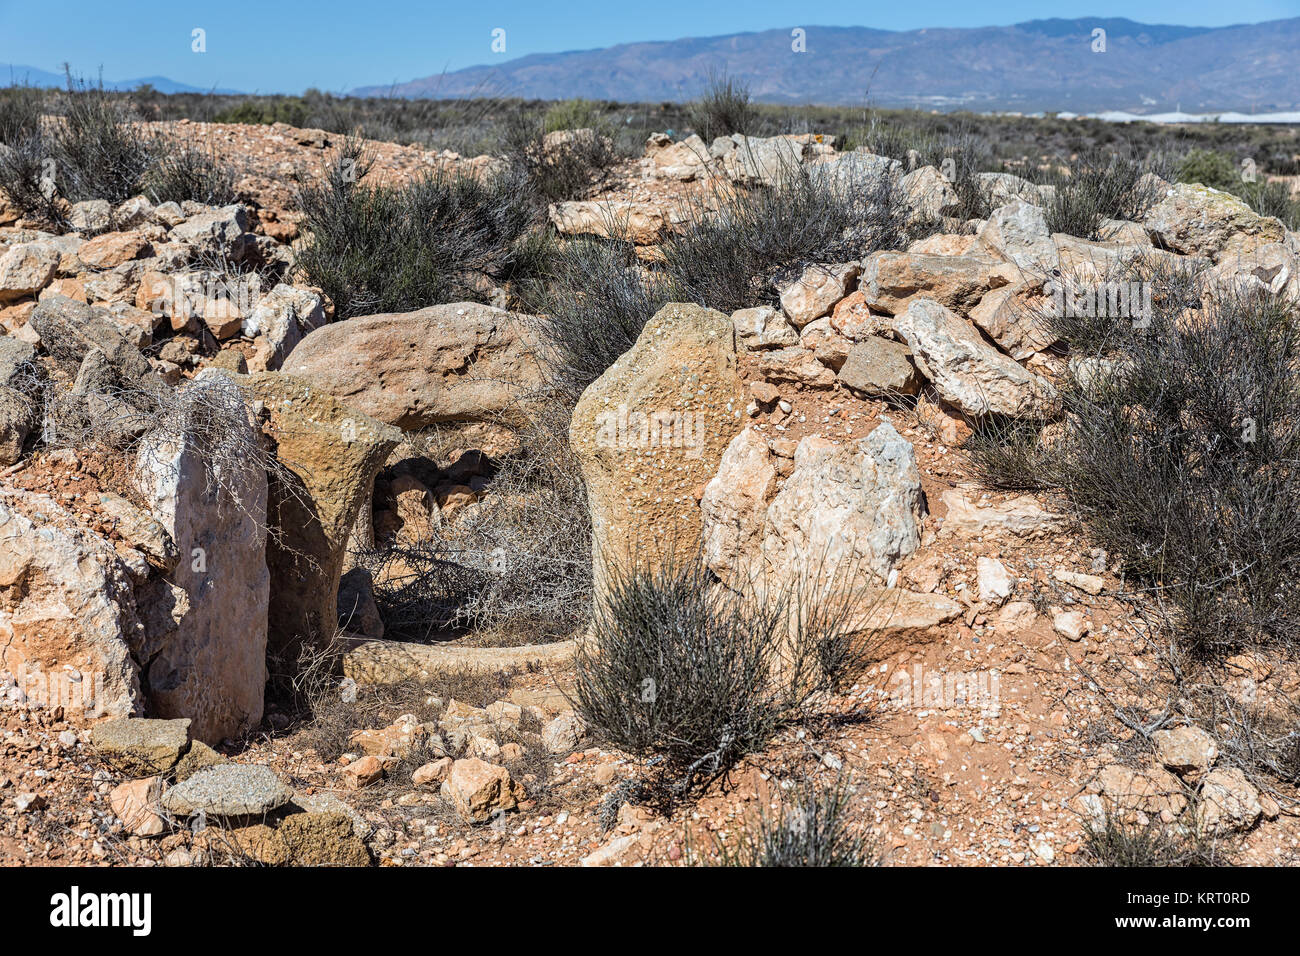 Megalithic Necropolis of El Barranquete. This necropolis, located in the municipality of Nijar and belonging to - Stock Image